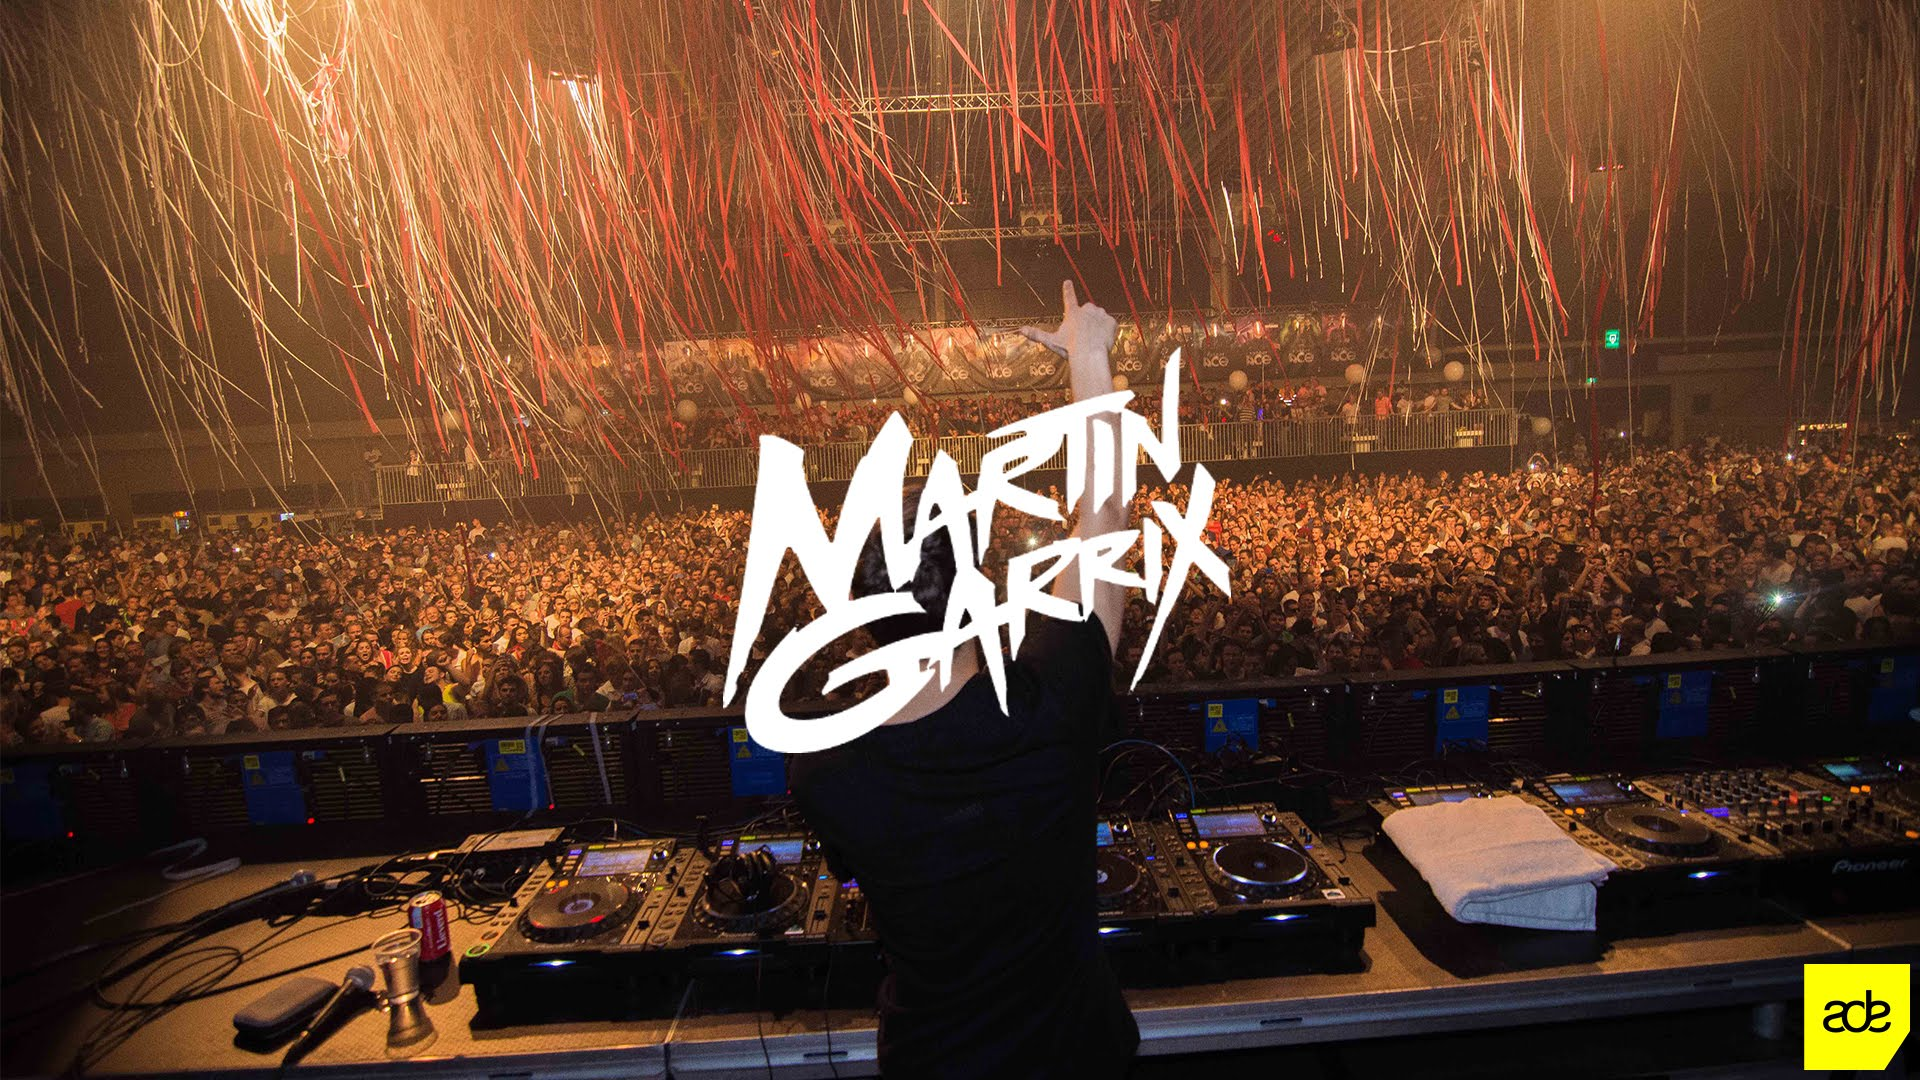 Martin Garrix Dj Wallpapers Wallpapersafari